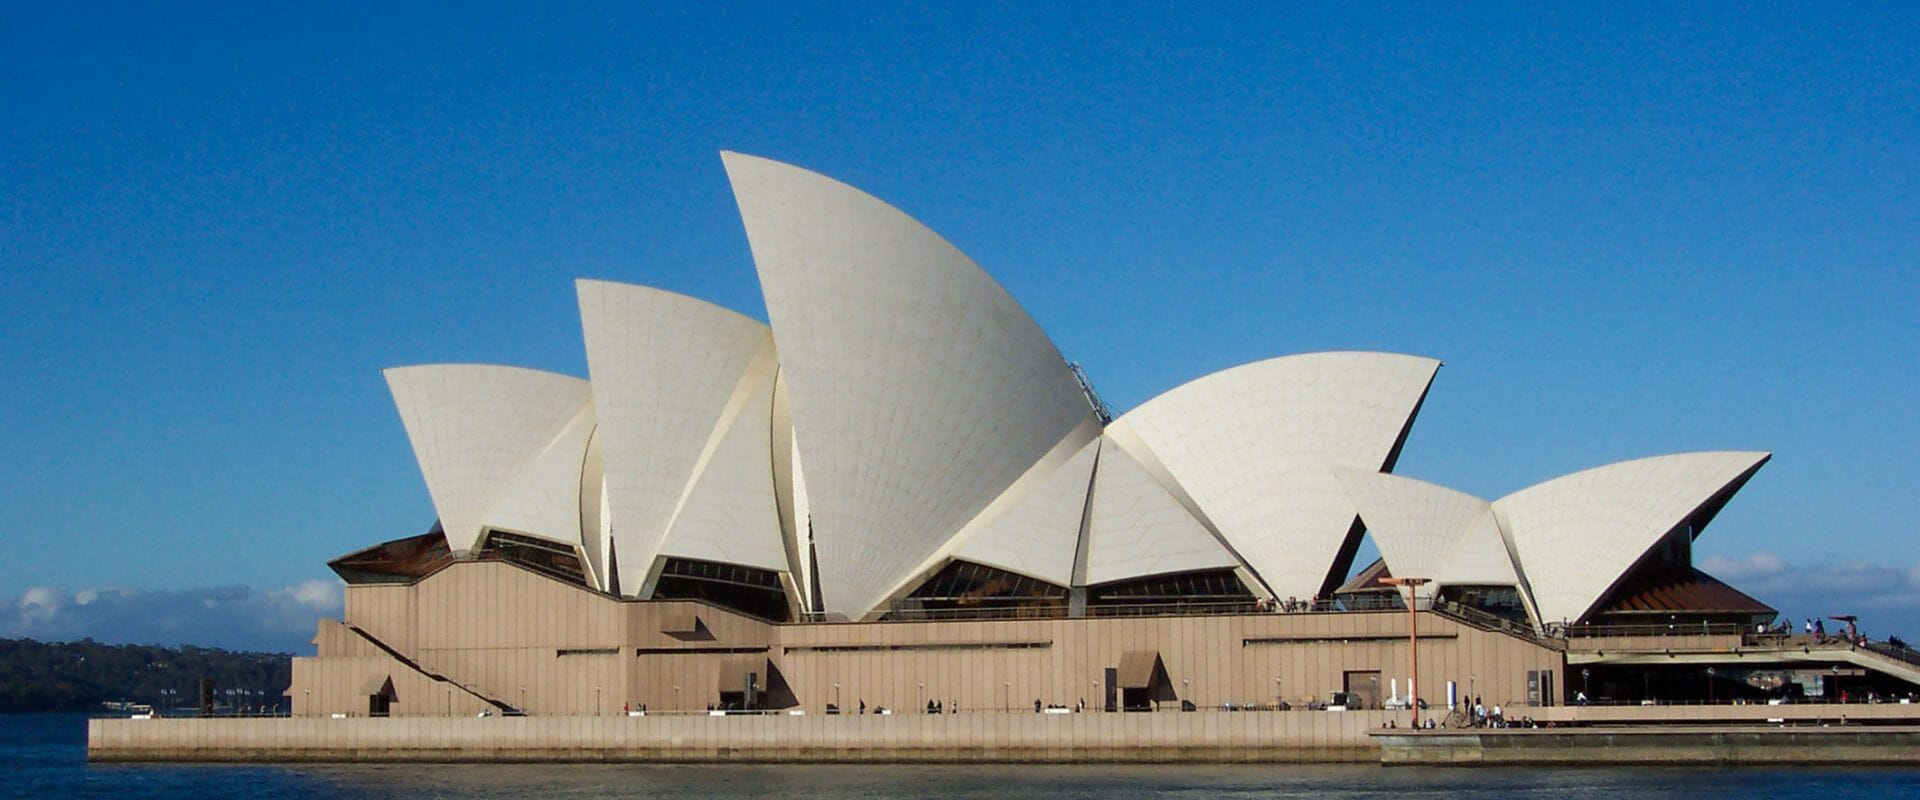 The sails of the Sydney Opera house on a calm, sunny day